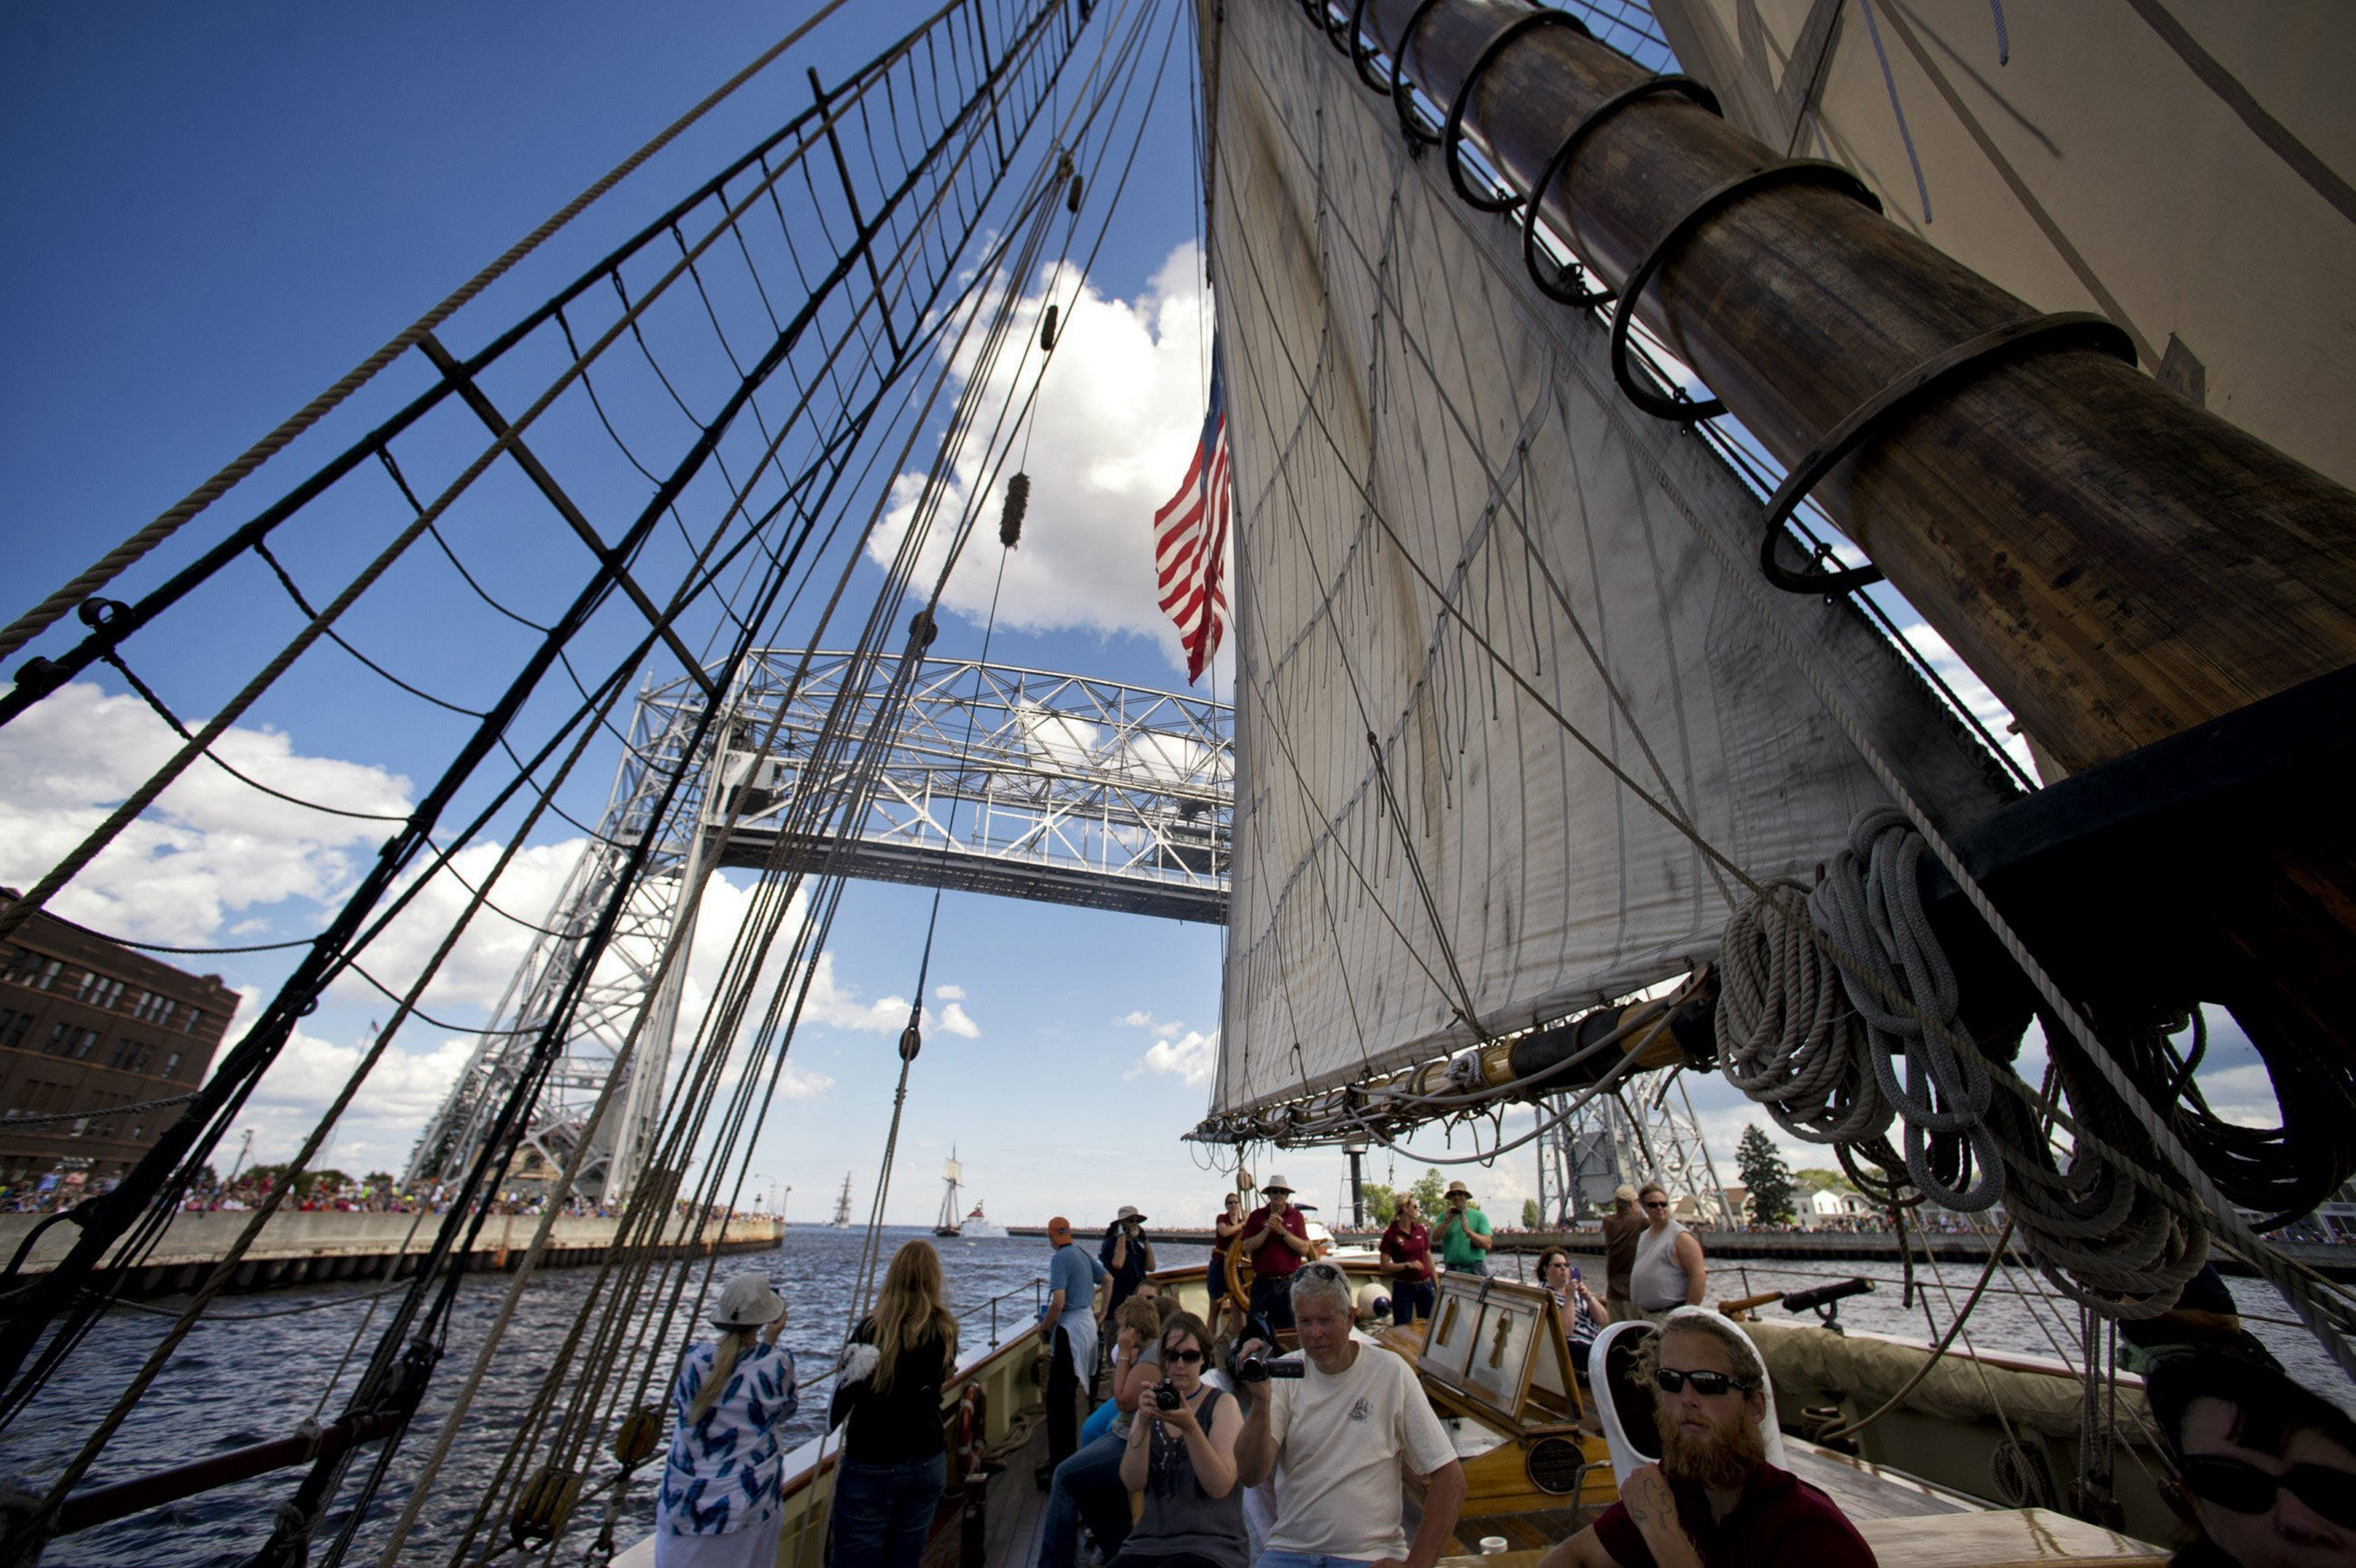 Members of the public can join the crew of the Pride of Baltimore II.